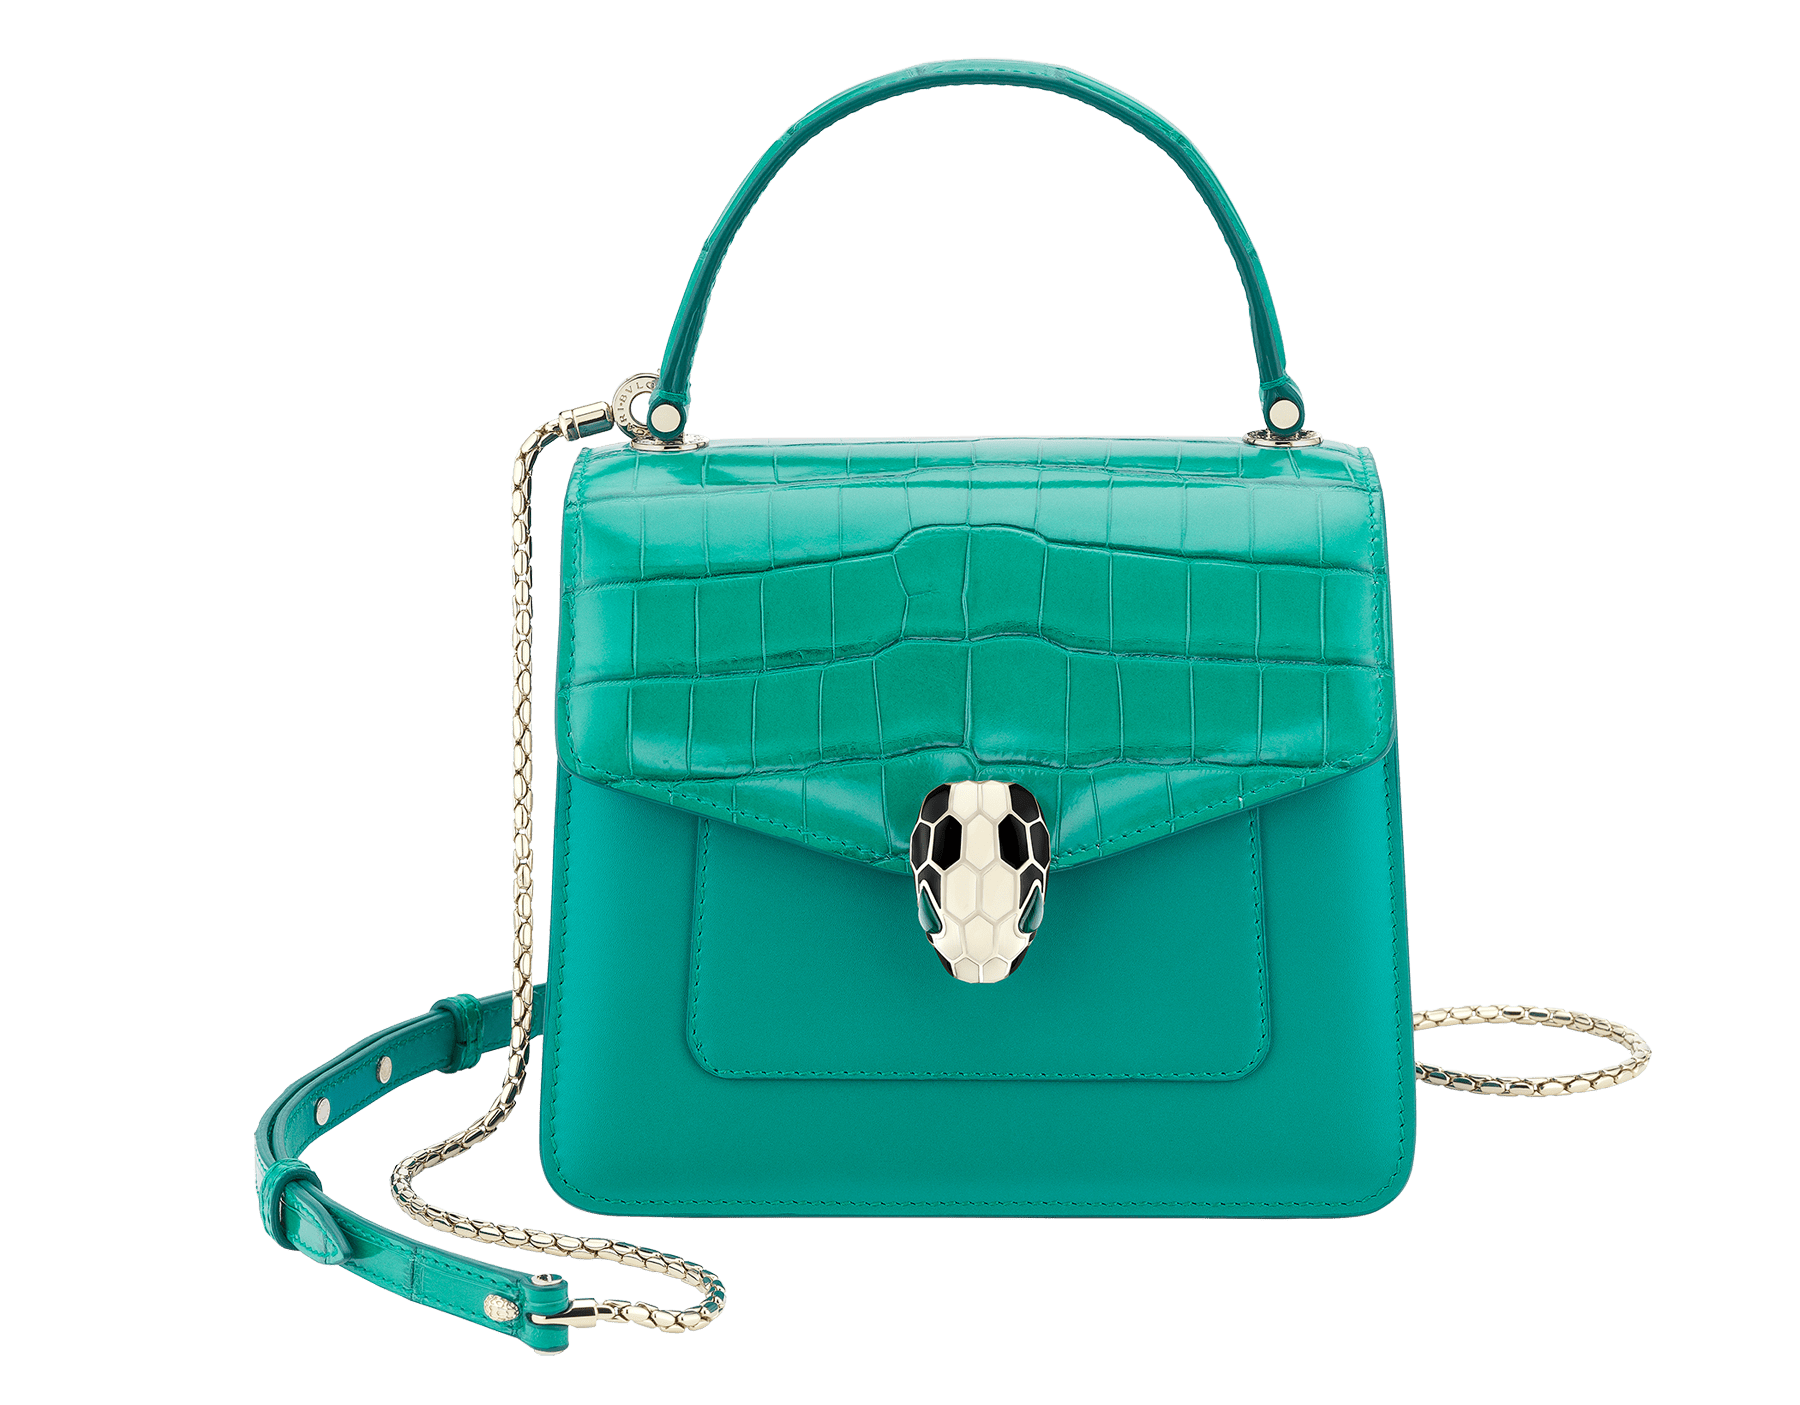 Serpenti Forever crossbody bag in tropical turquoise shiny croco skin and smooth calf leather. Snakehead closure in light gold plated brass decorated with black and white enamel, and green malachite eyes. 752-CLCR image 1